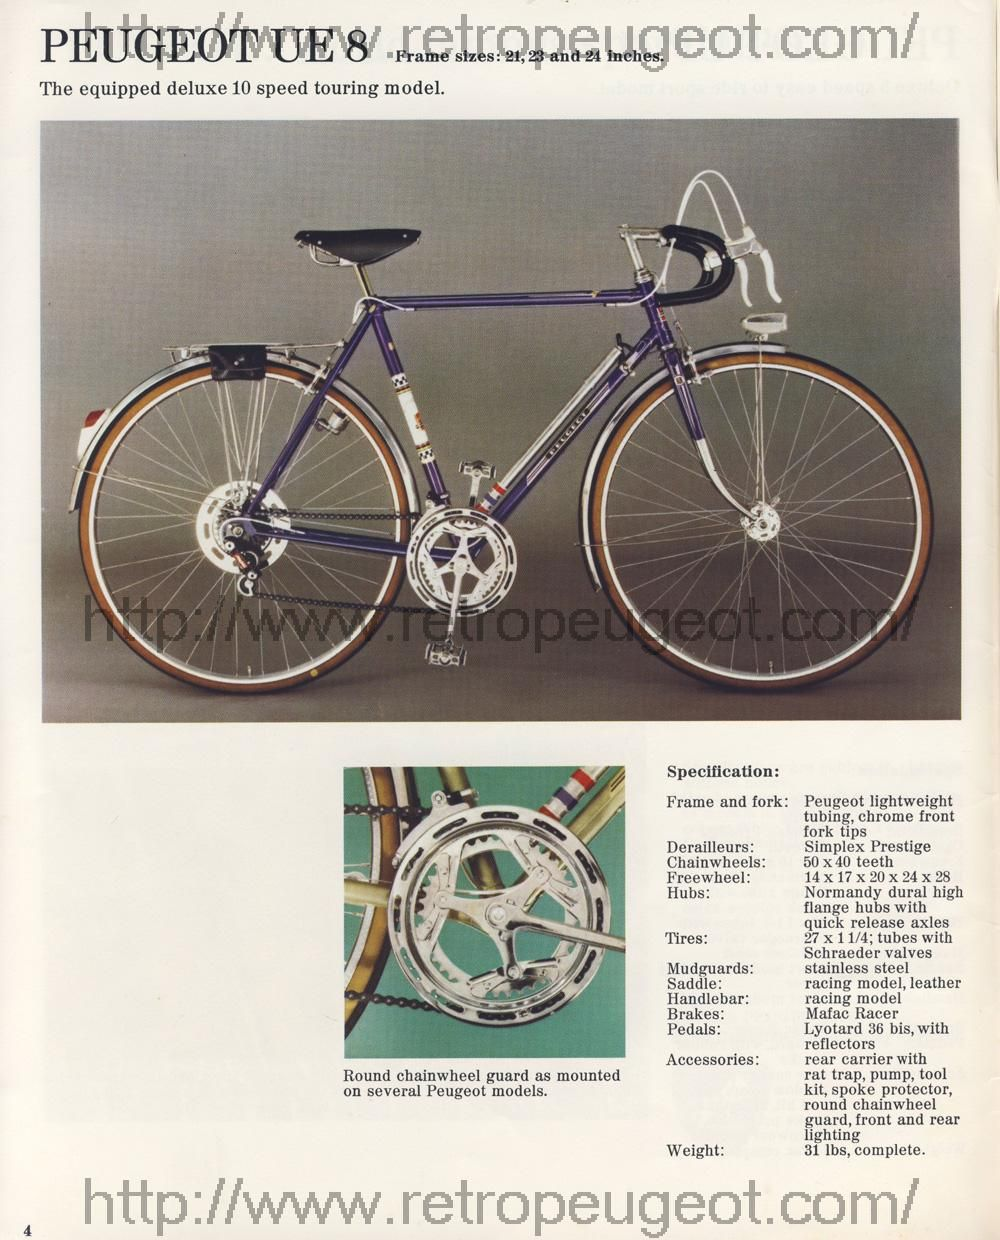 1974 brochure- usa peugeot ue-8 | bikes | check email, check your